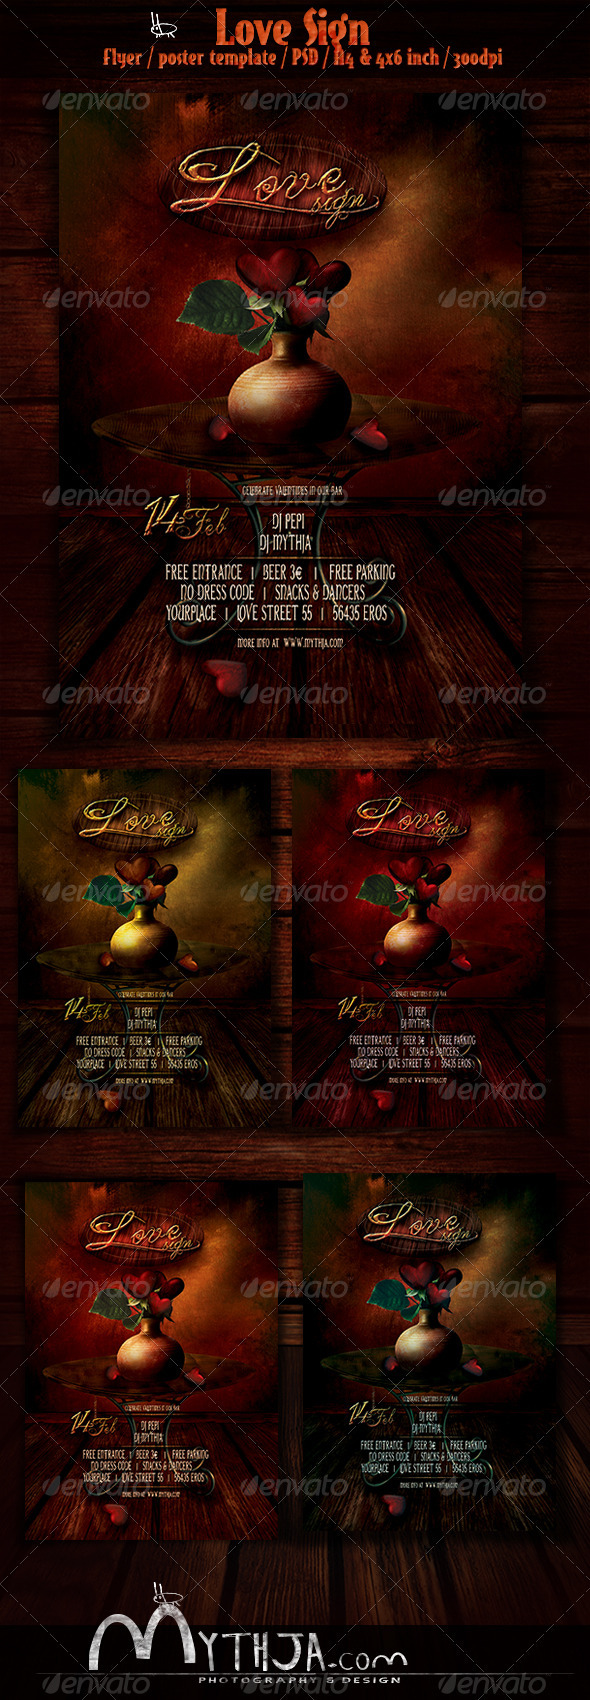 GraphicRiver Love Sign Valentines Flyer Poster Template 3848243